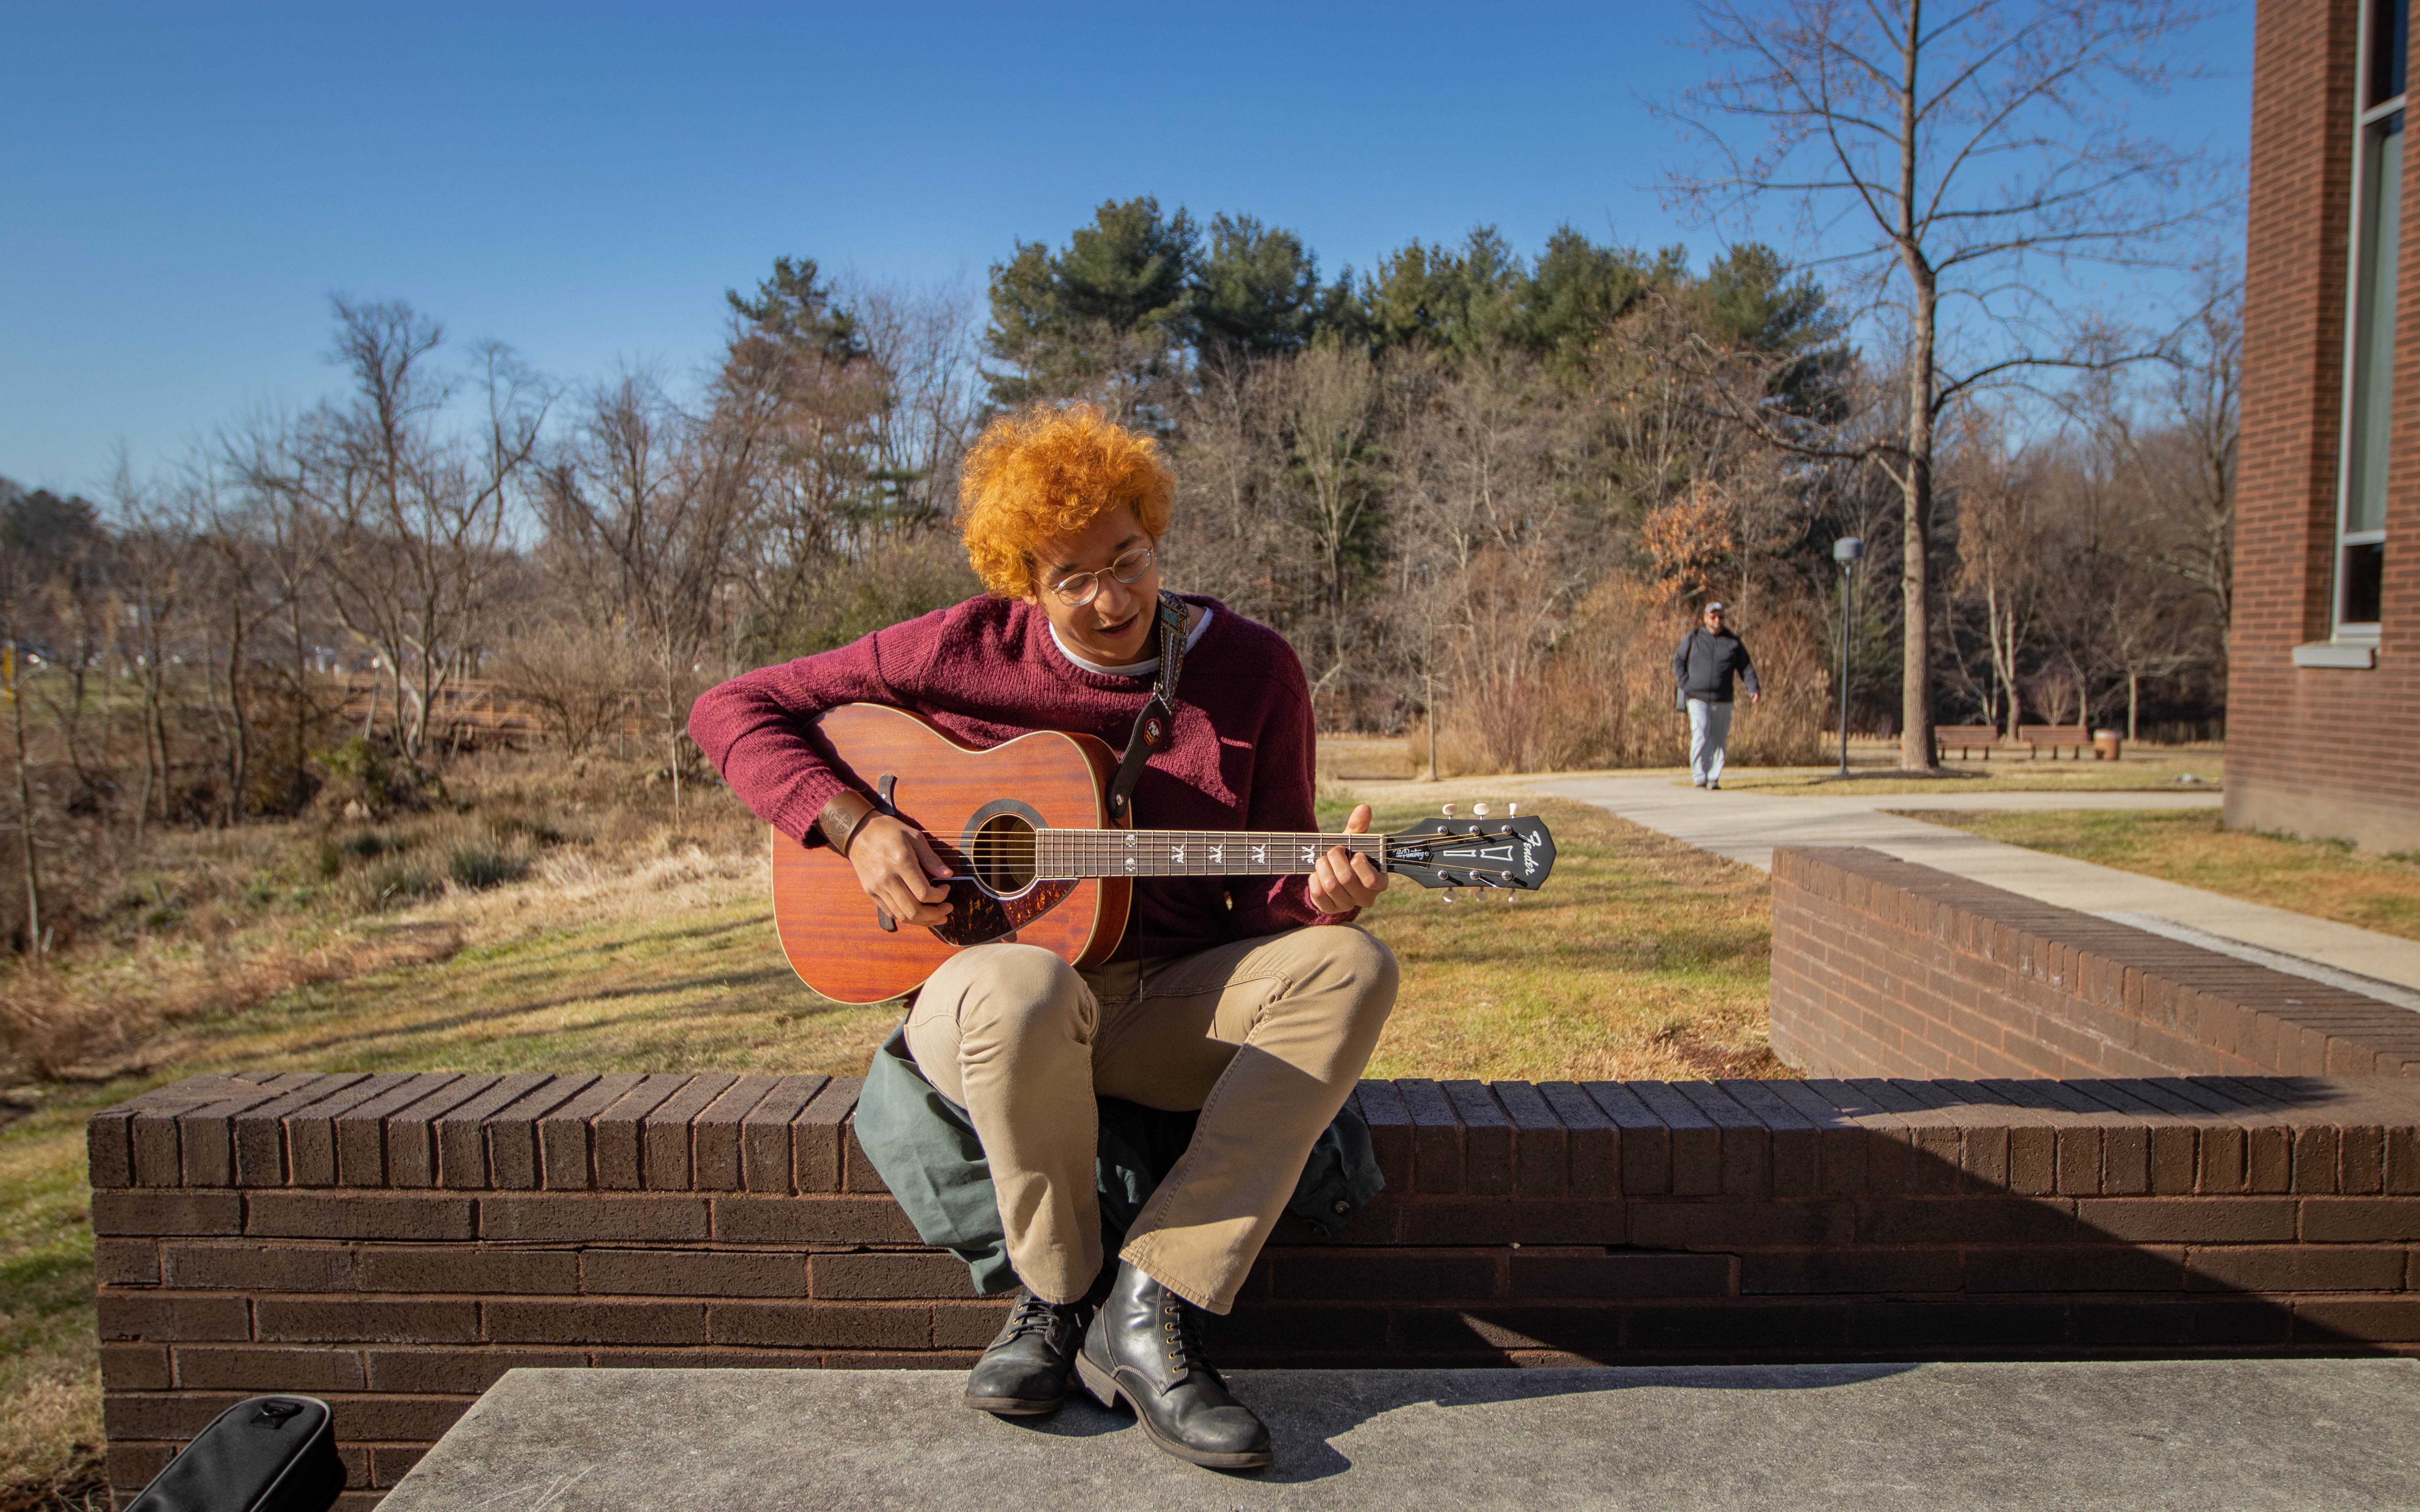 Luis playing his guitar on a bench outside of Wilson Hall.